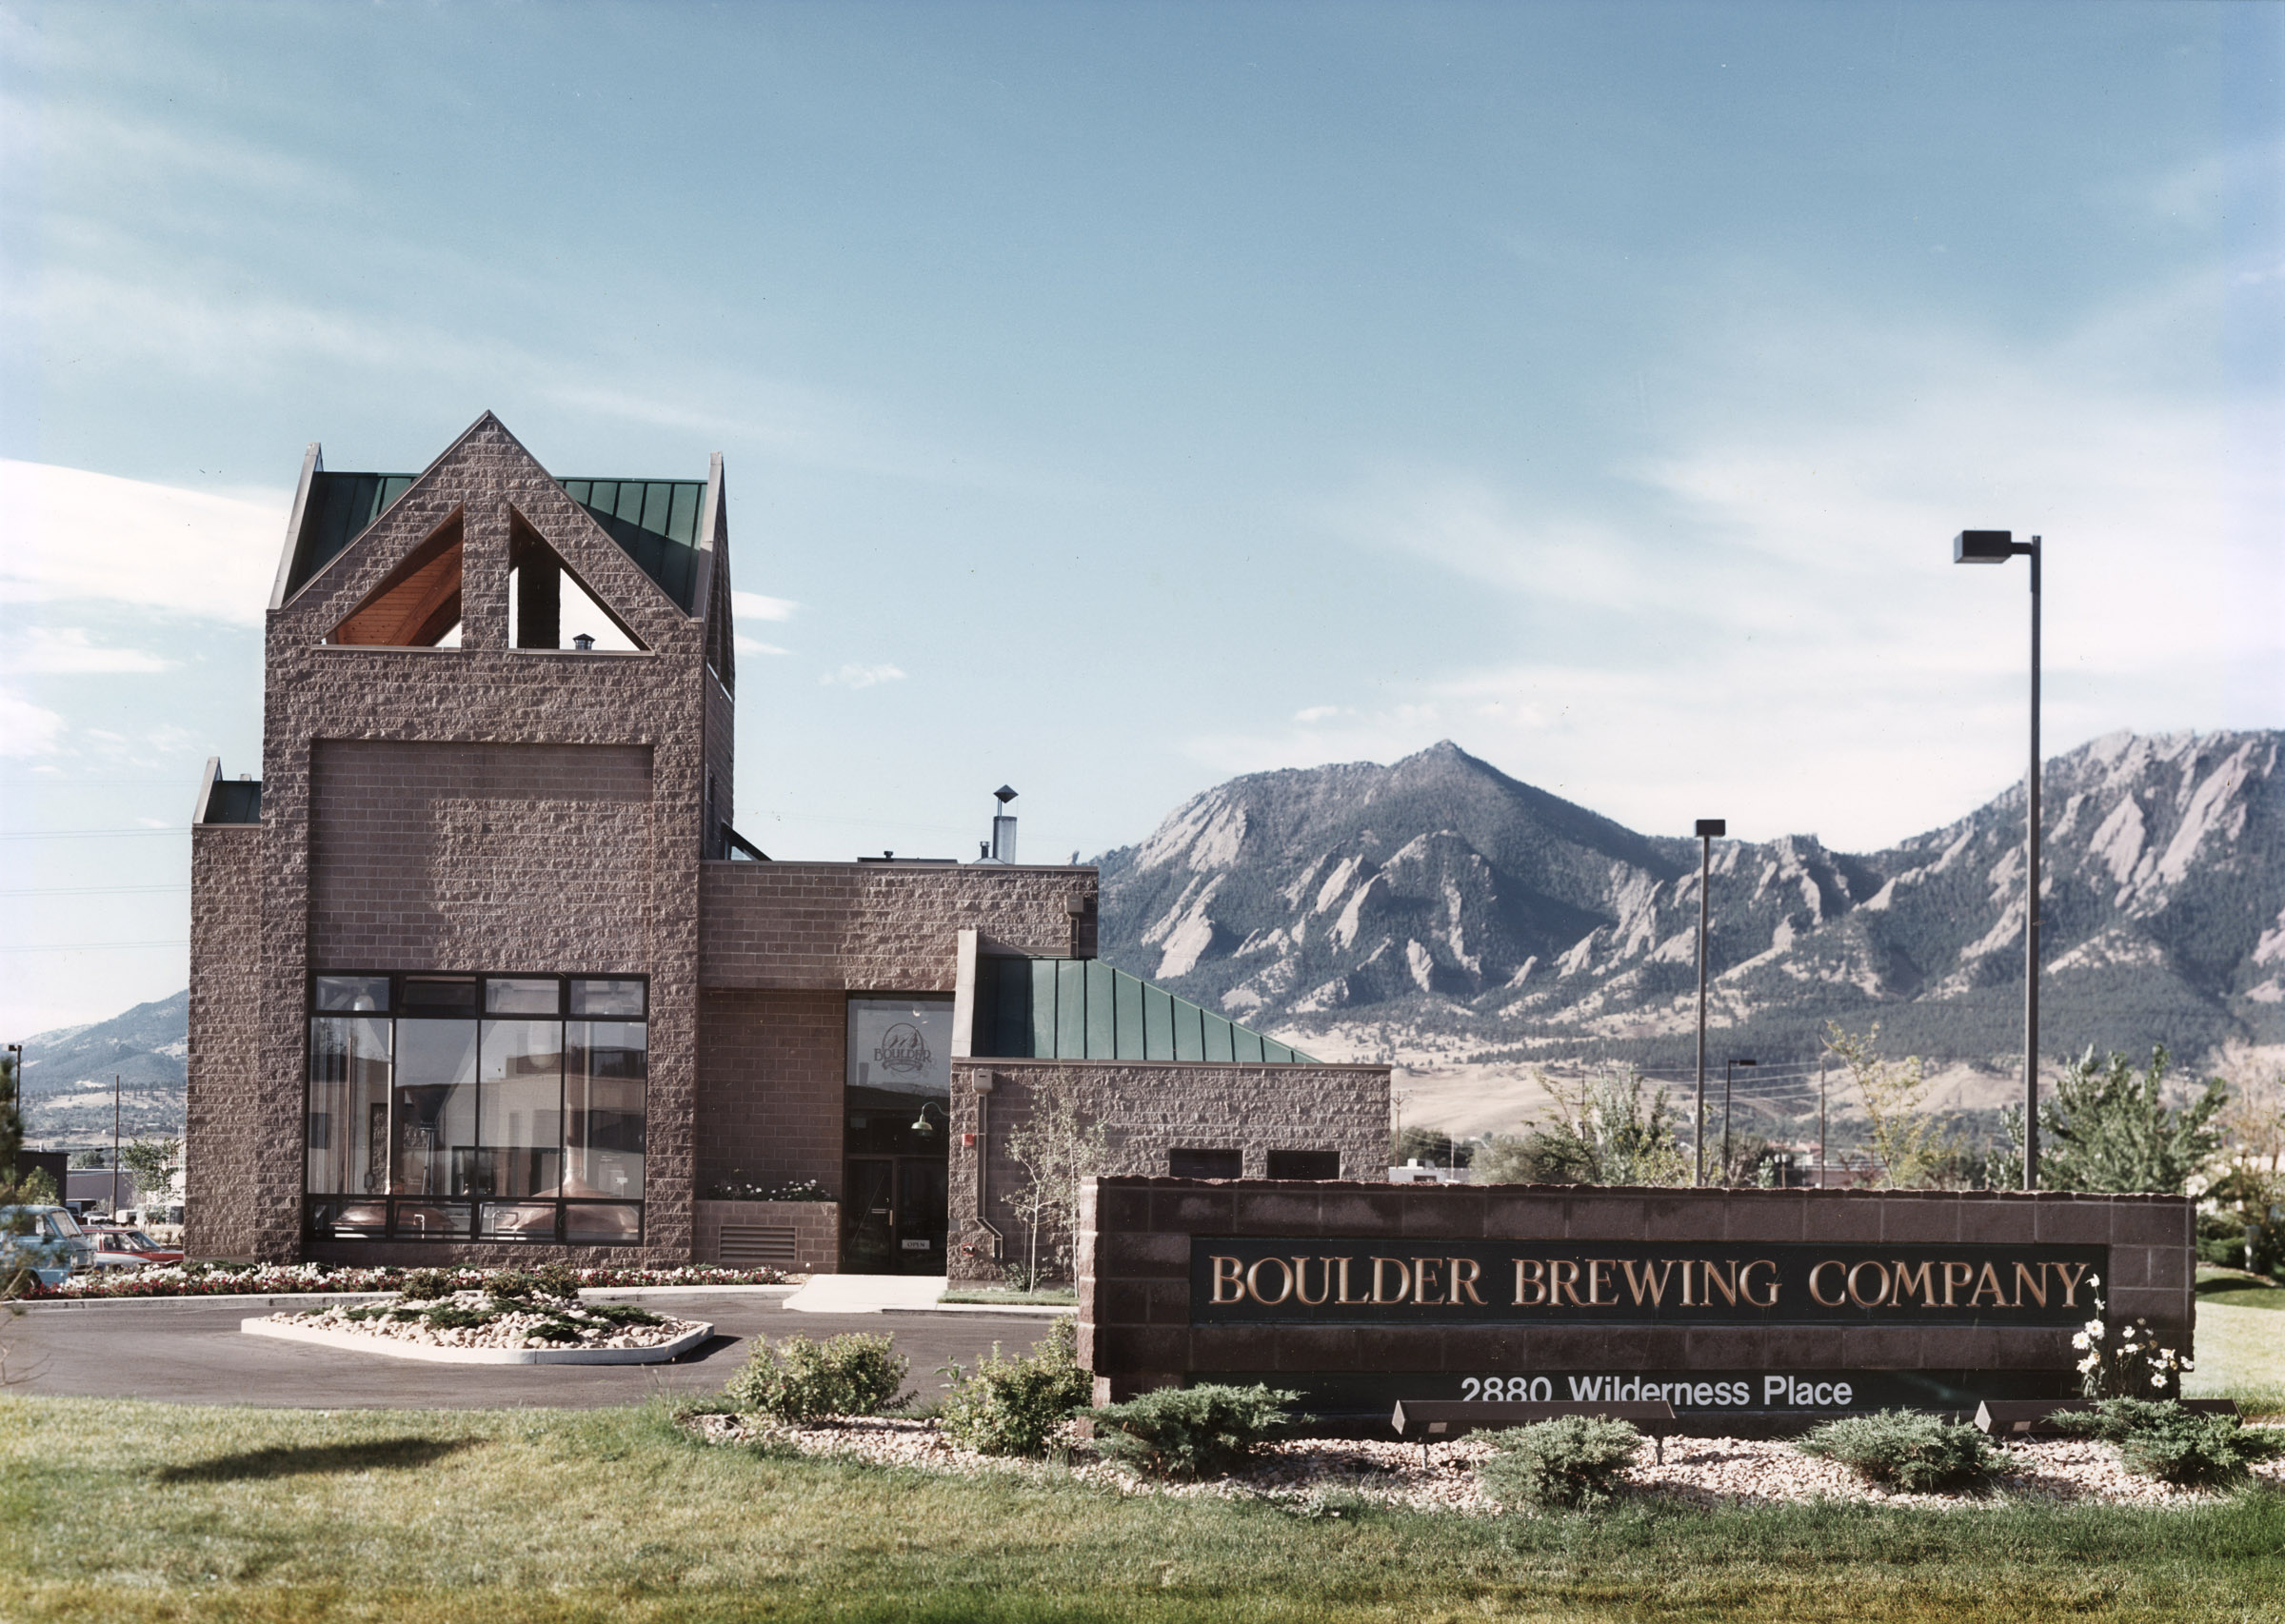 Boulder Brewing 1984 low res.jpg